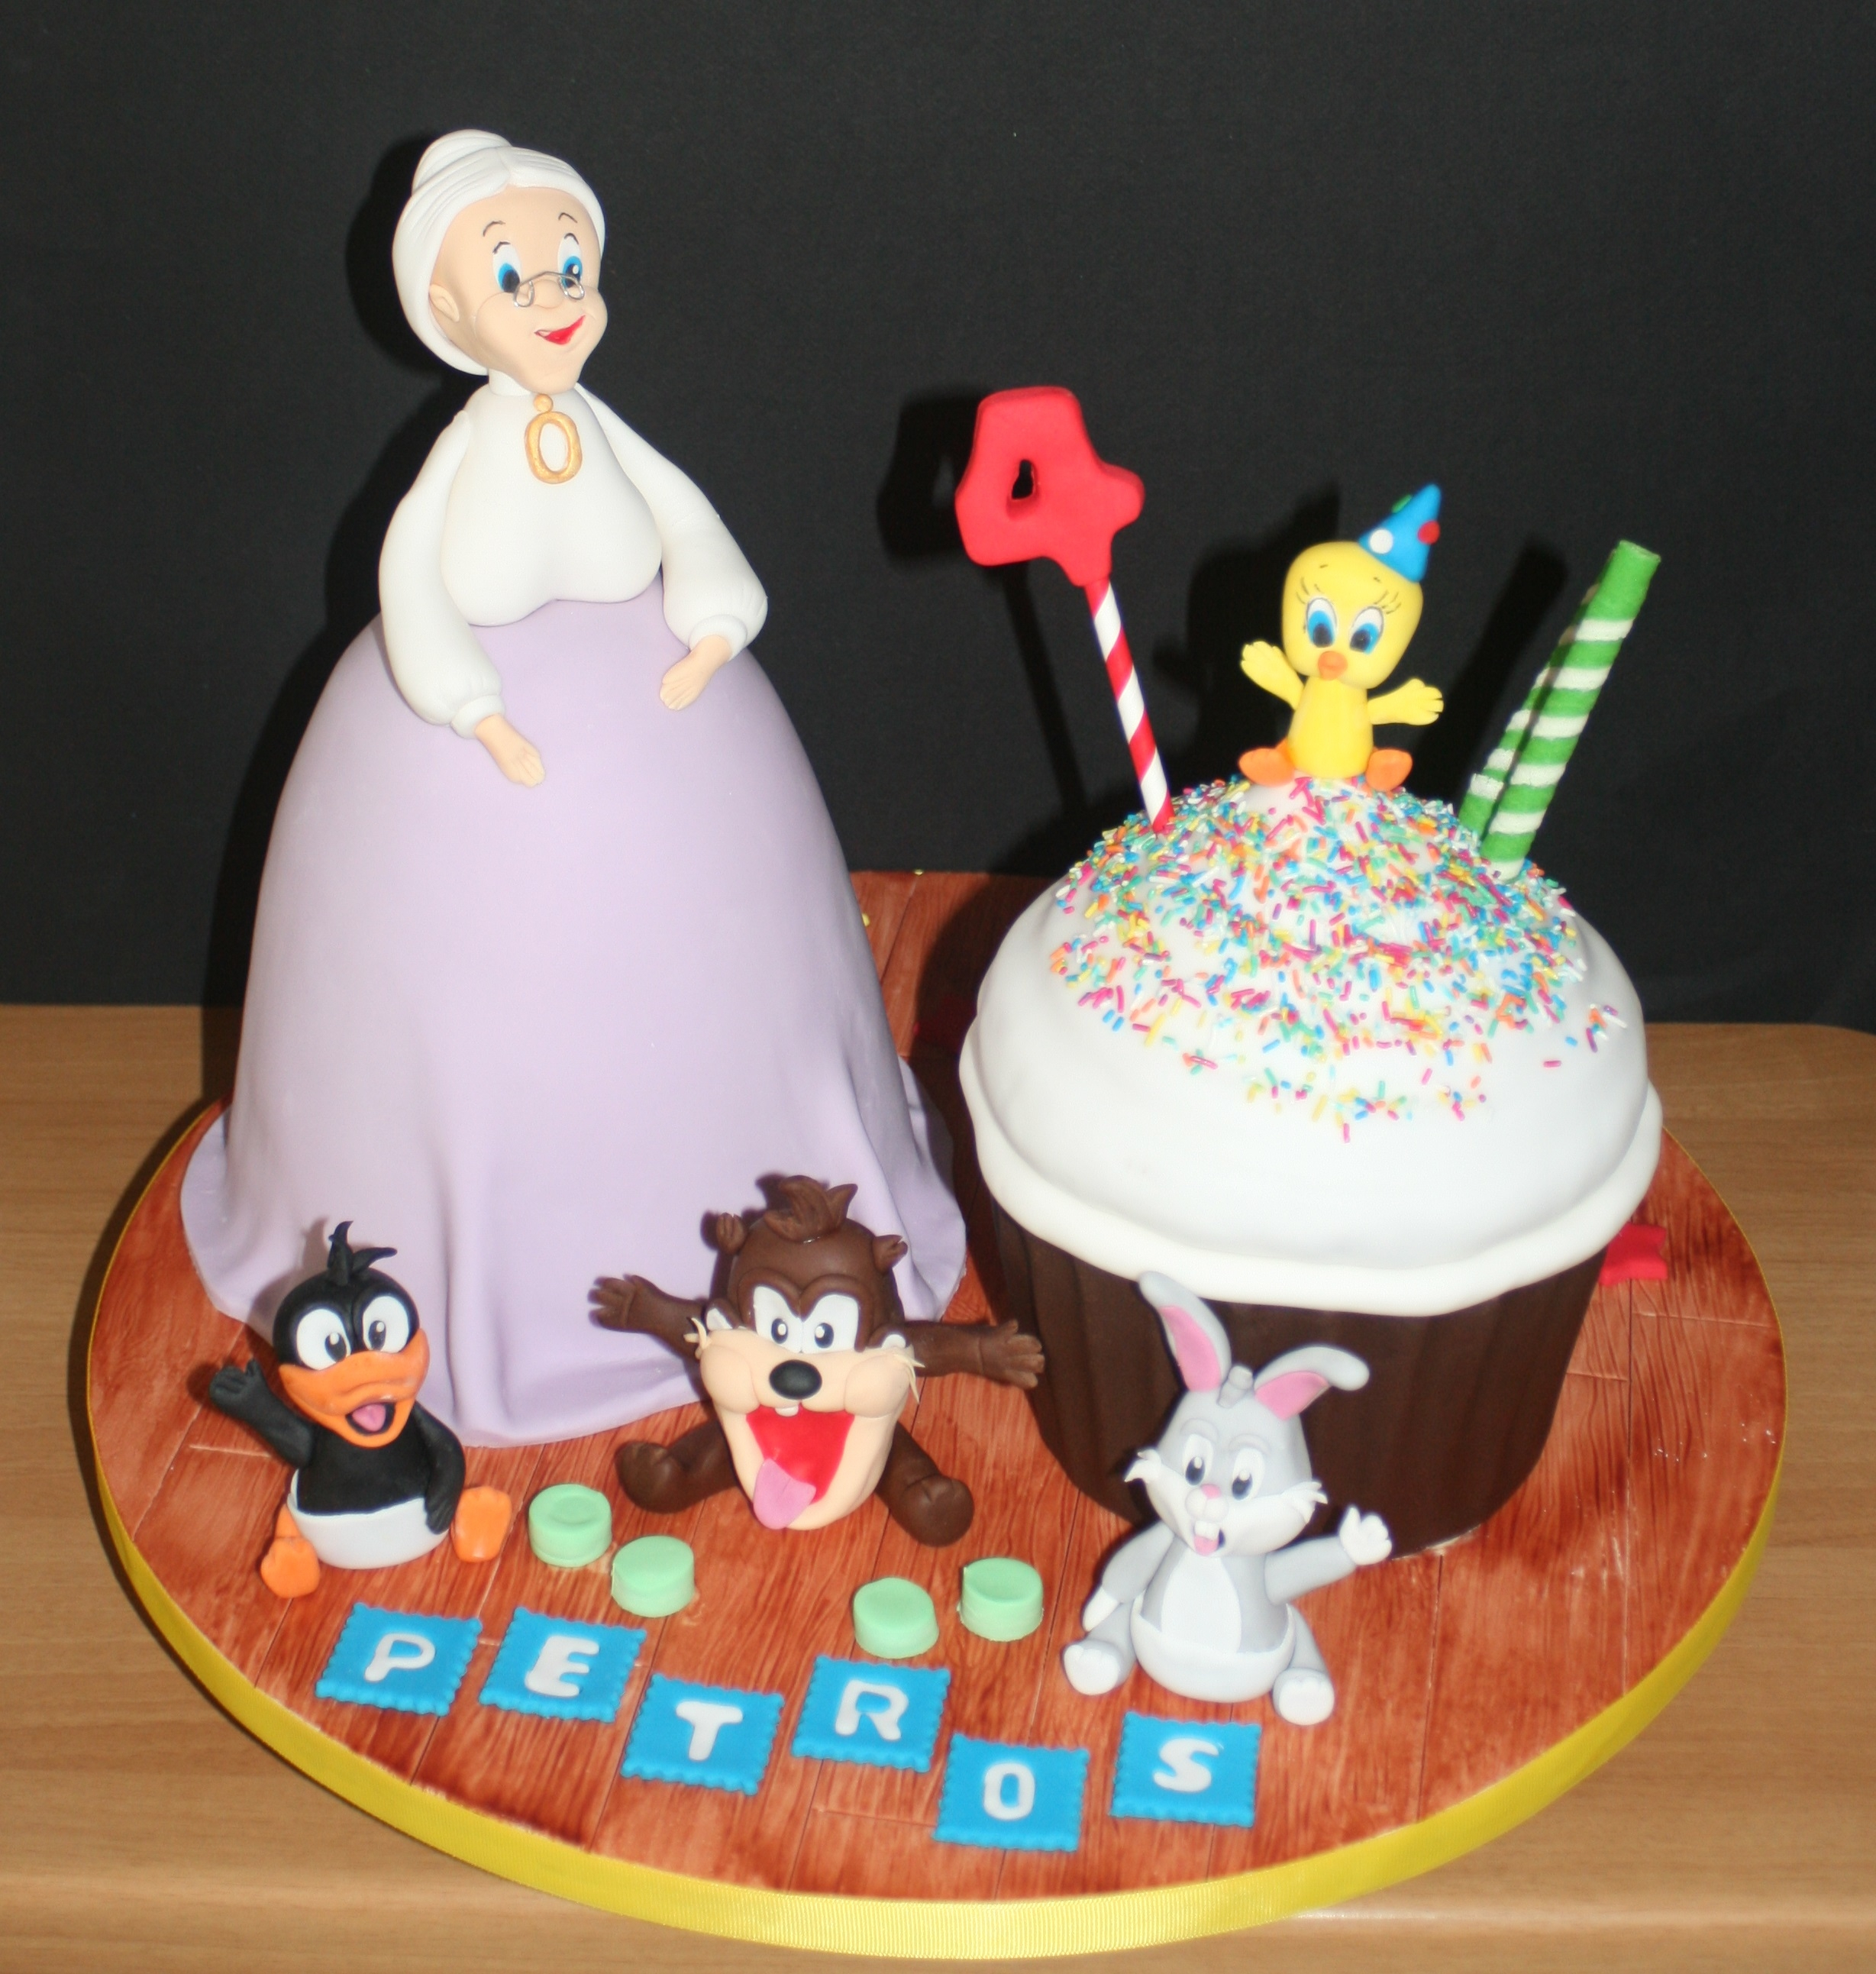 Baby looney tunes cake for Baby looney tune decoration